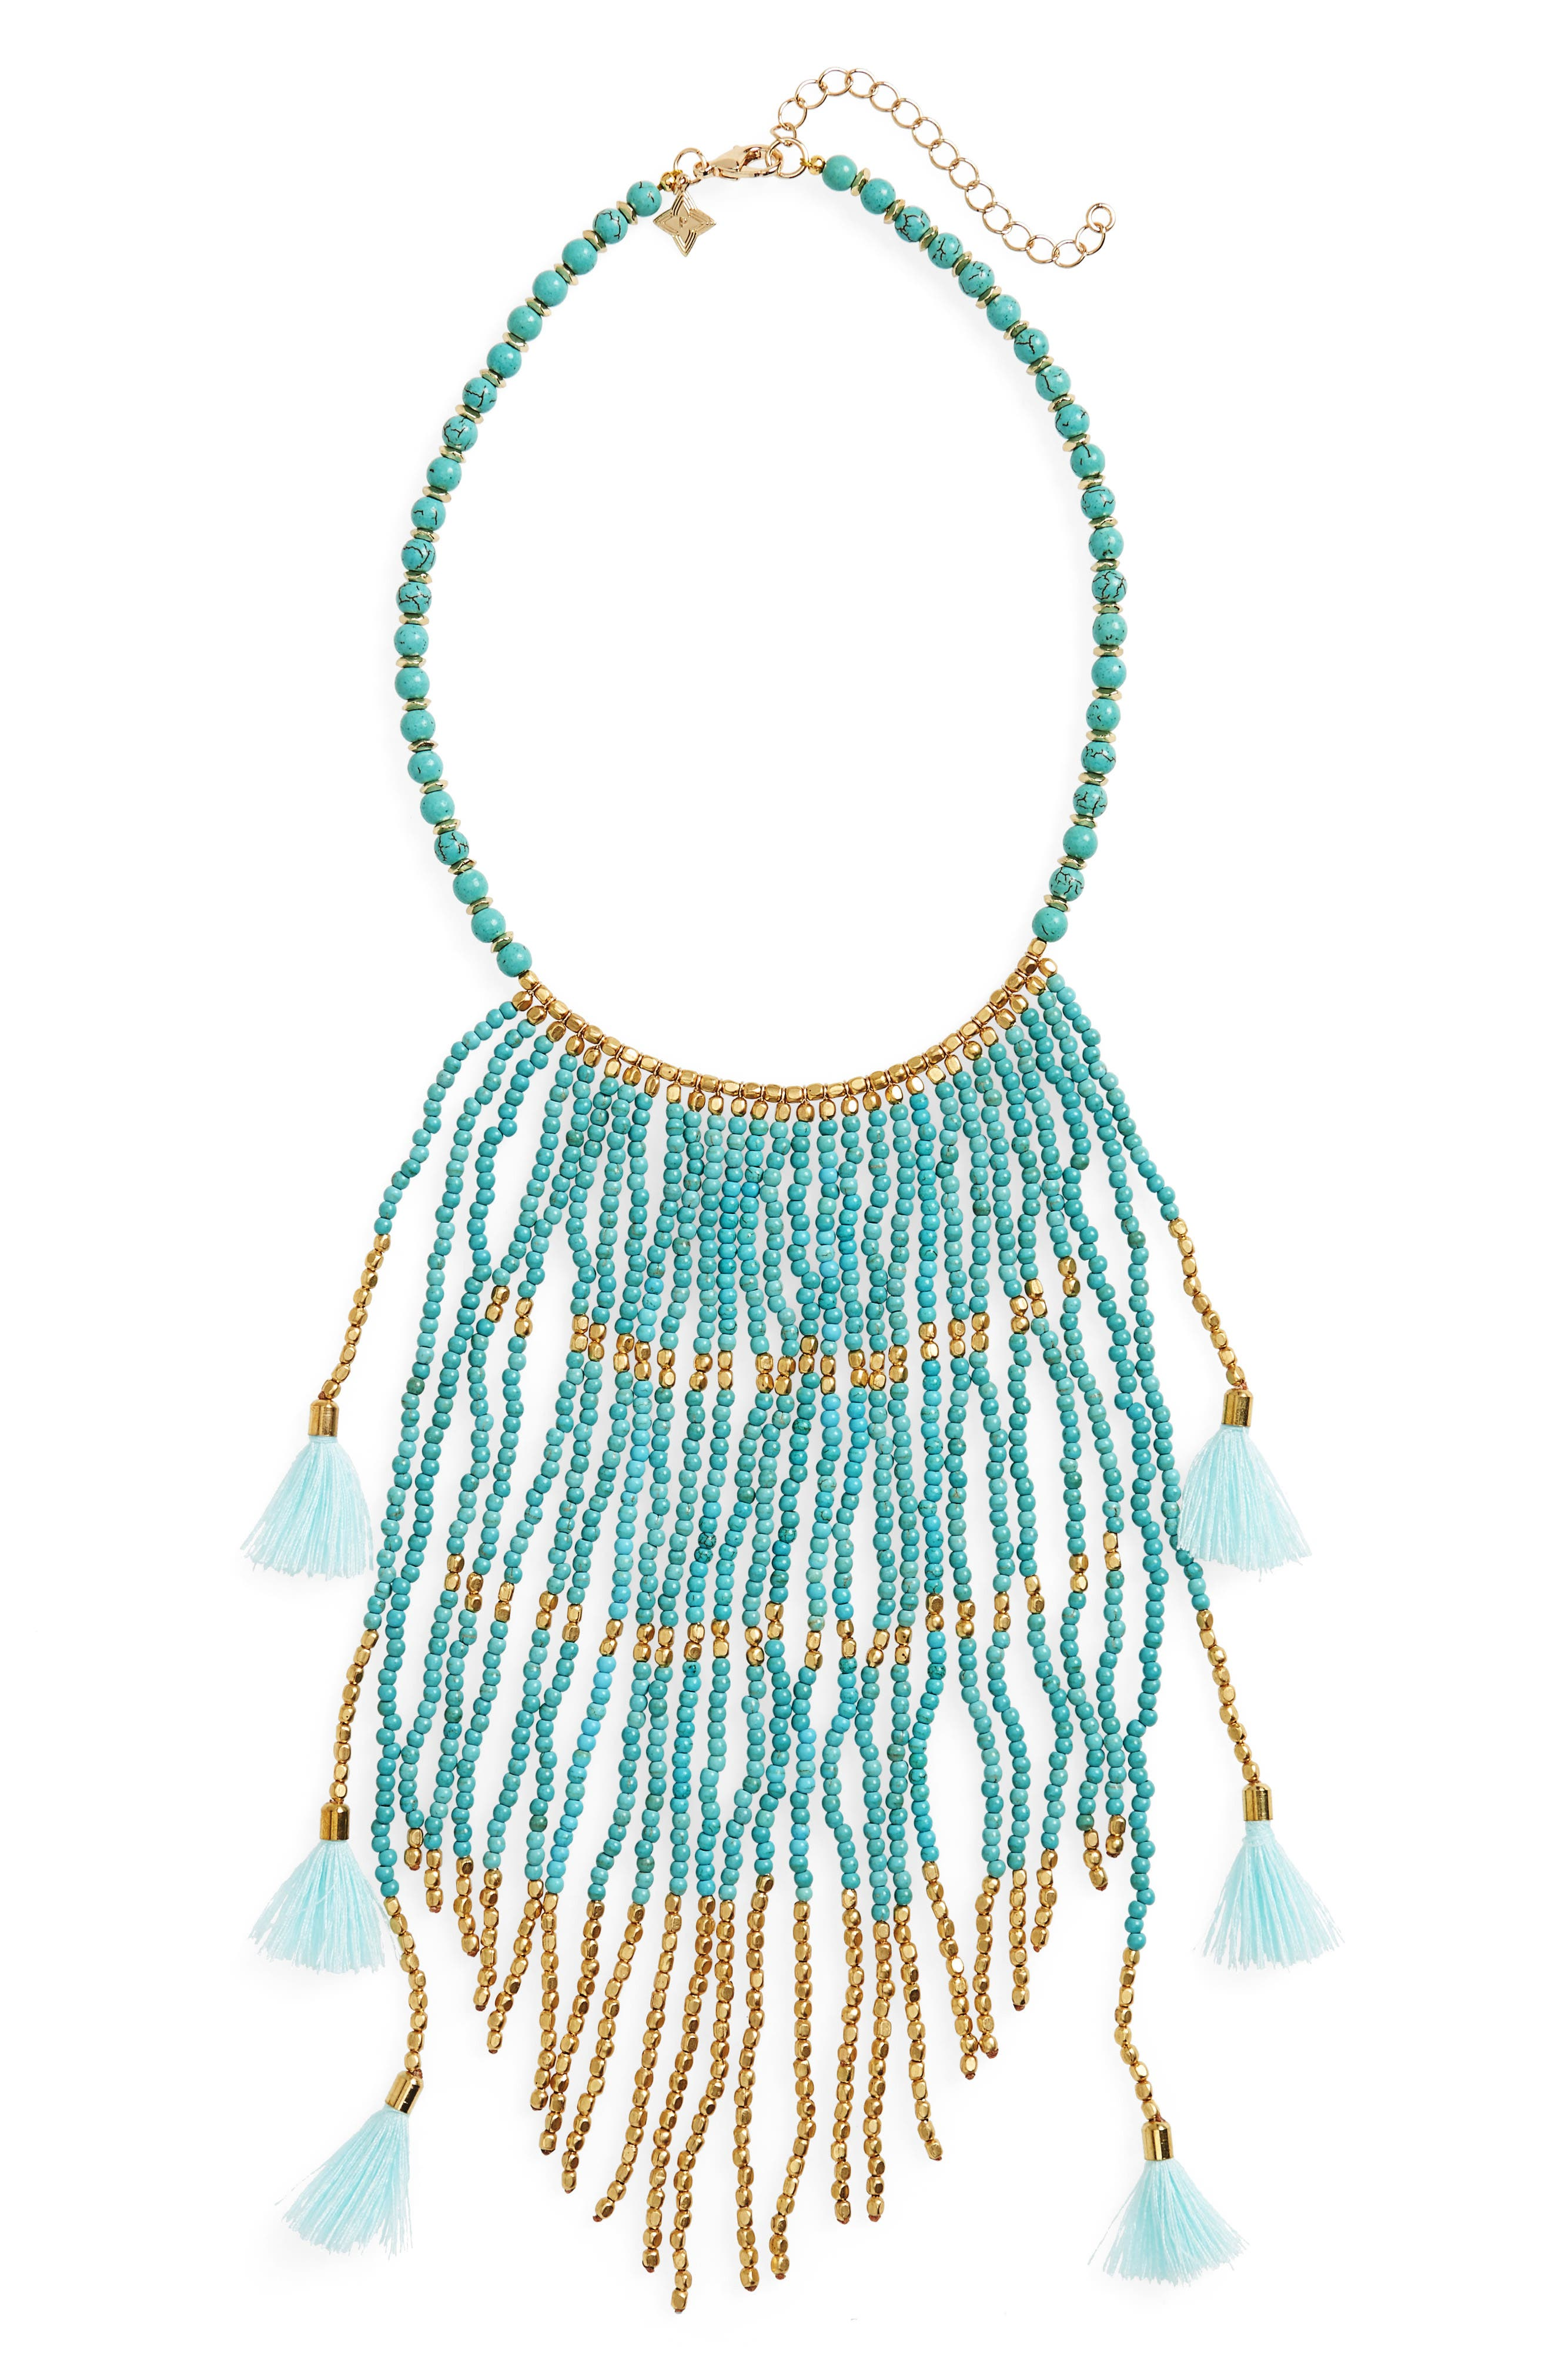 Beaded Fringe Statement Necklace,                         Main,                         color, Turquoise